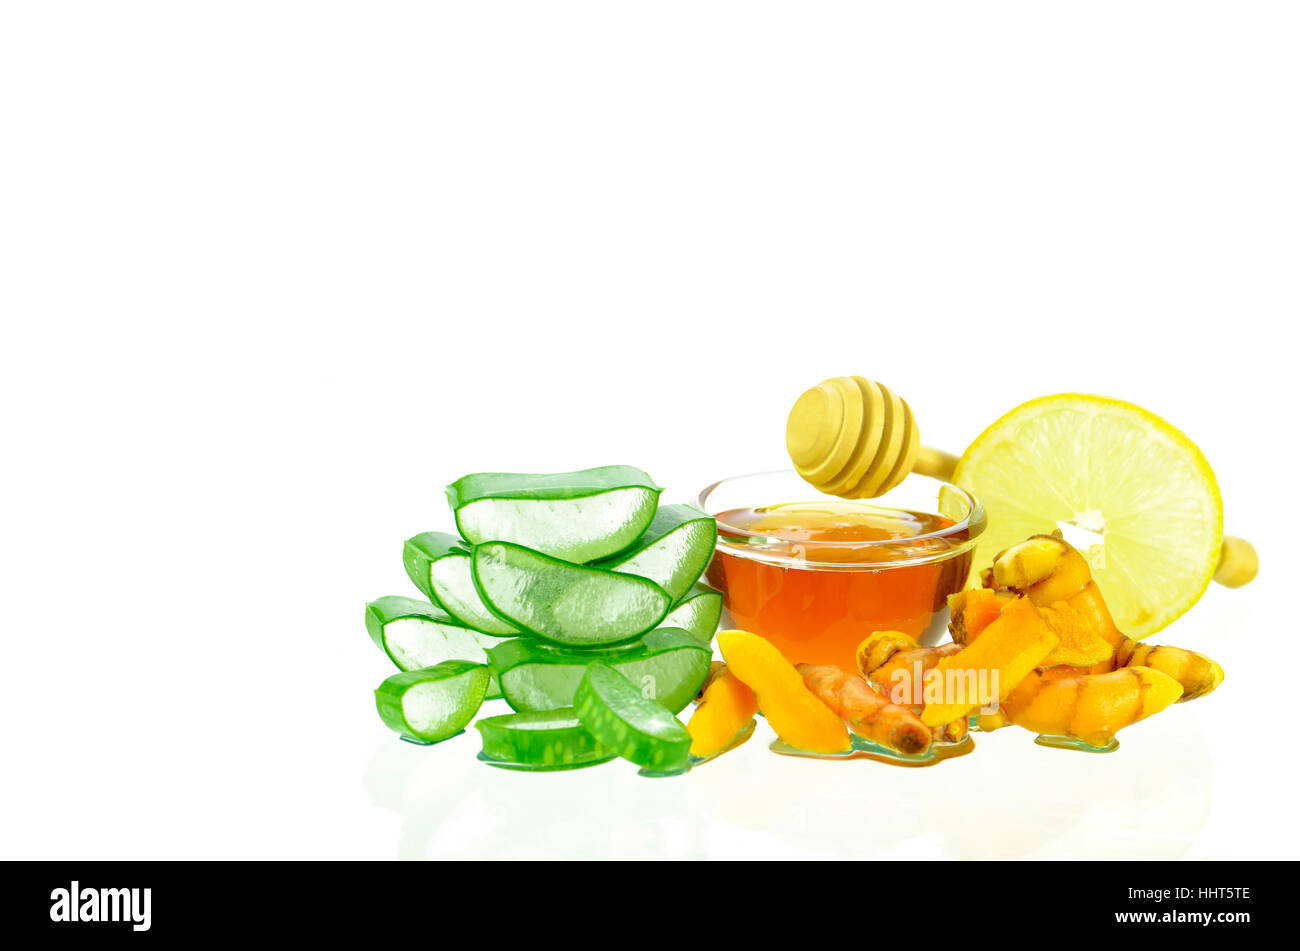 Asian skincare therapy from nature with aloe vera gel, curmin, lamon juice and honey. - Stock Image